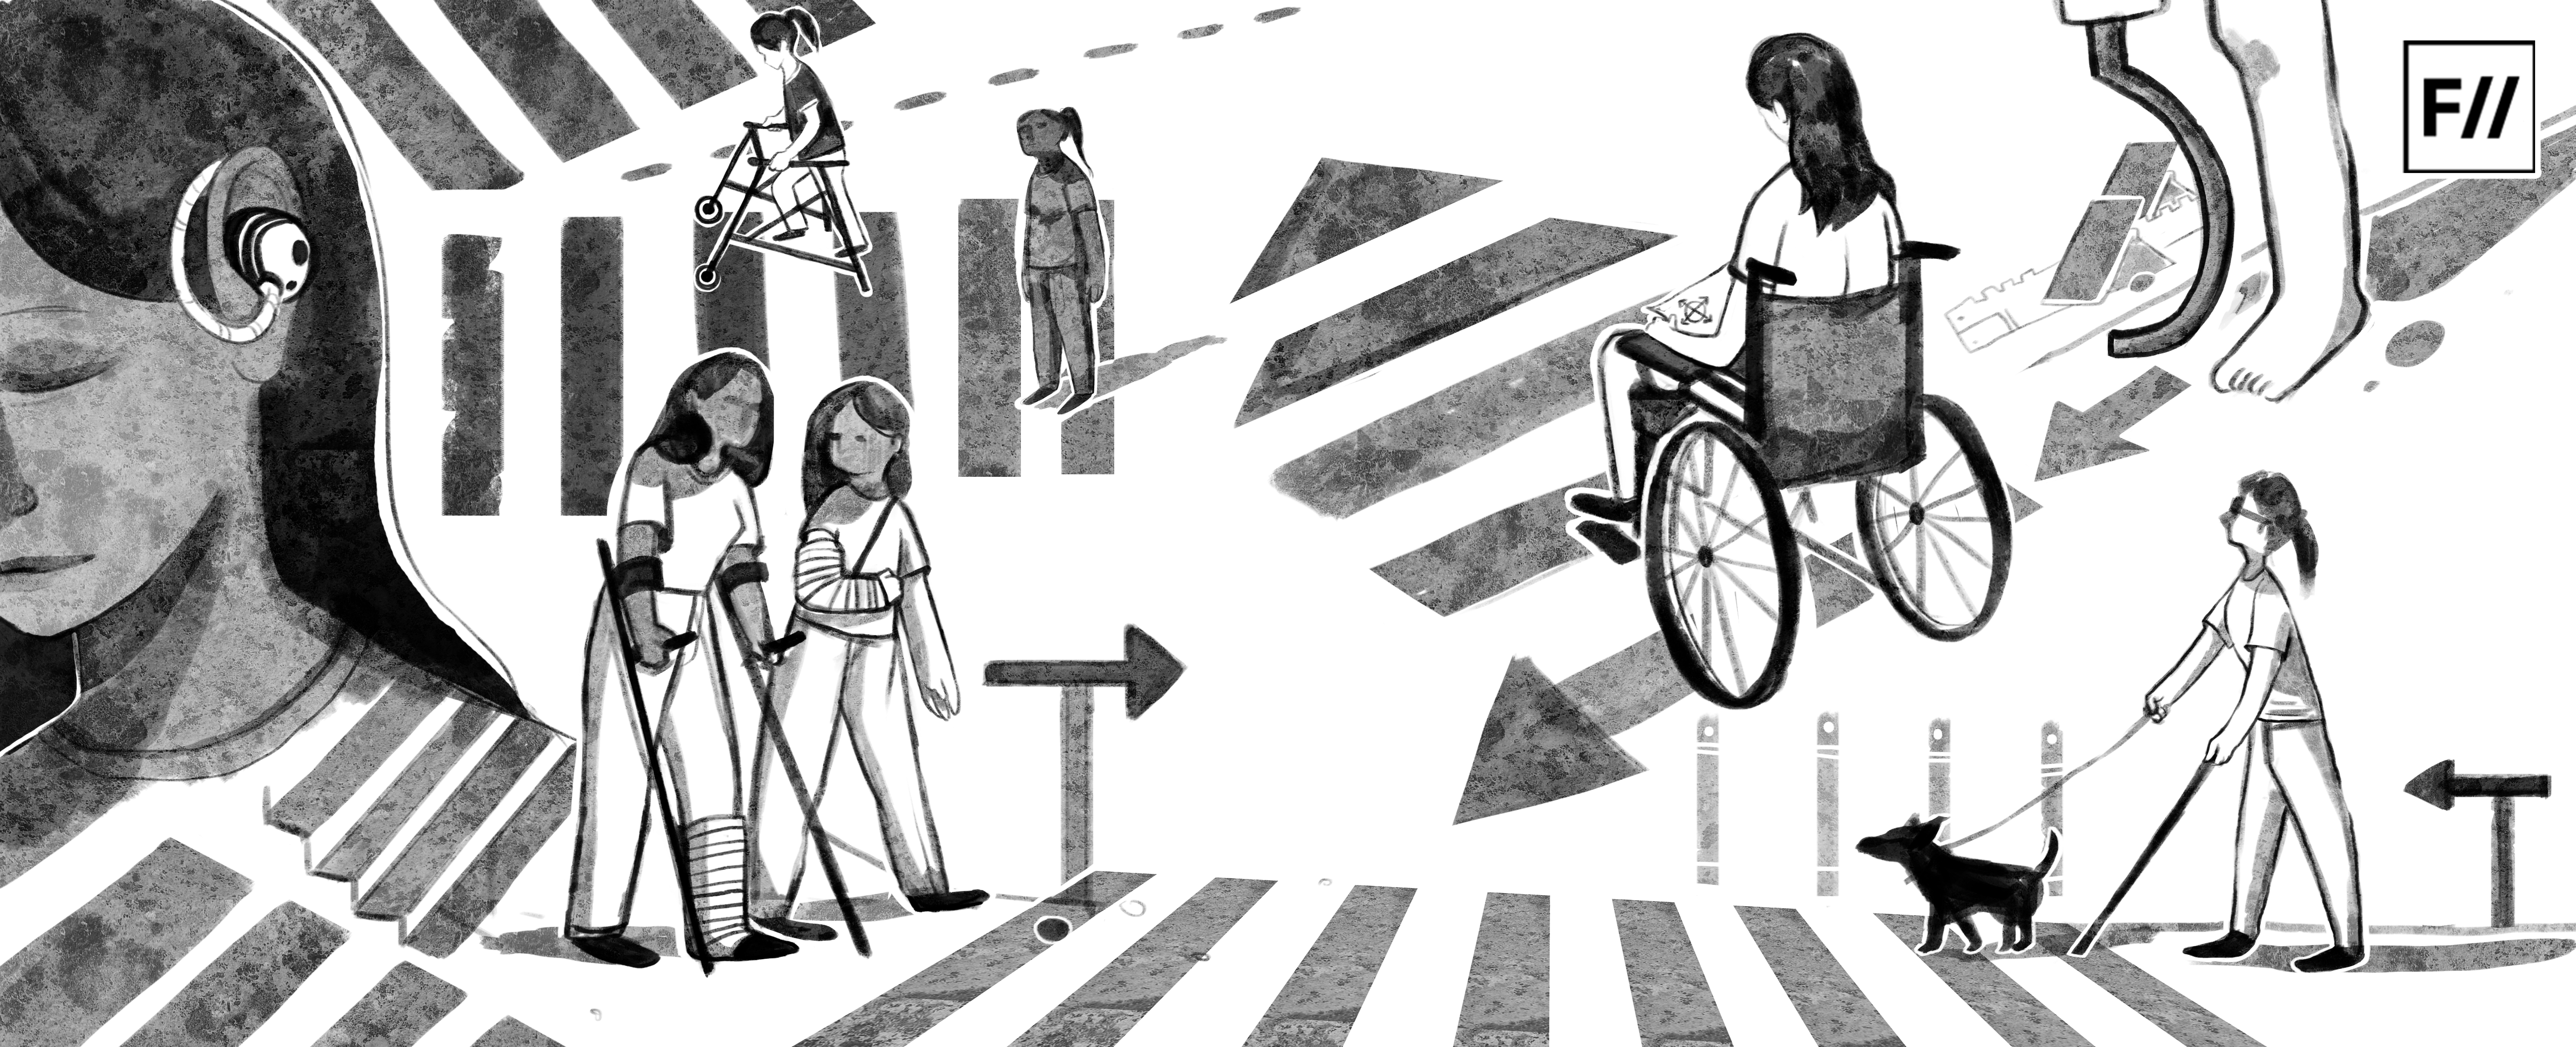 Queer & Disabled — A Quest For Inclusion In Ablest-Queer & Homophobic-Disabled Communities